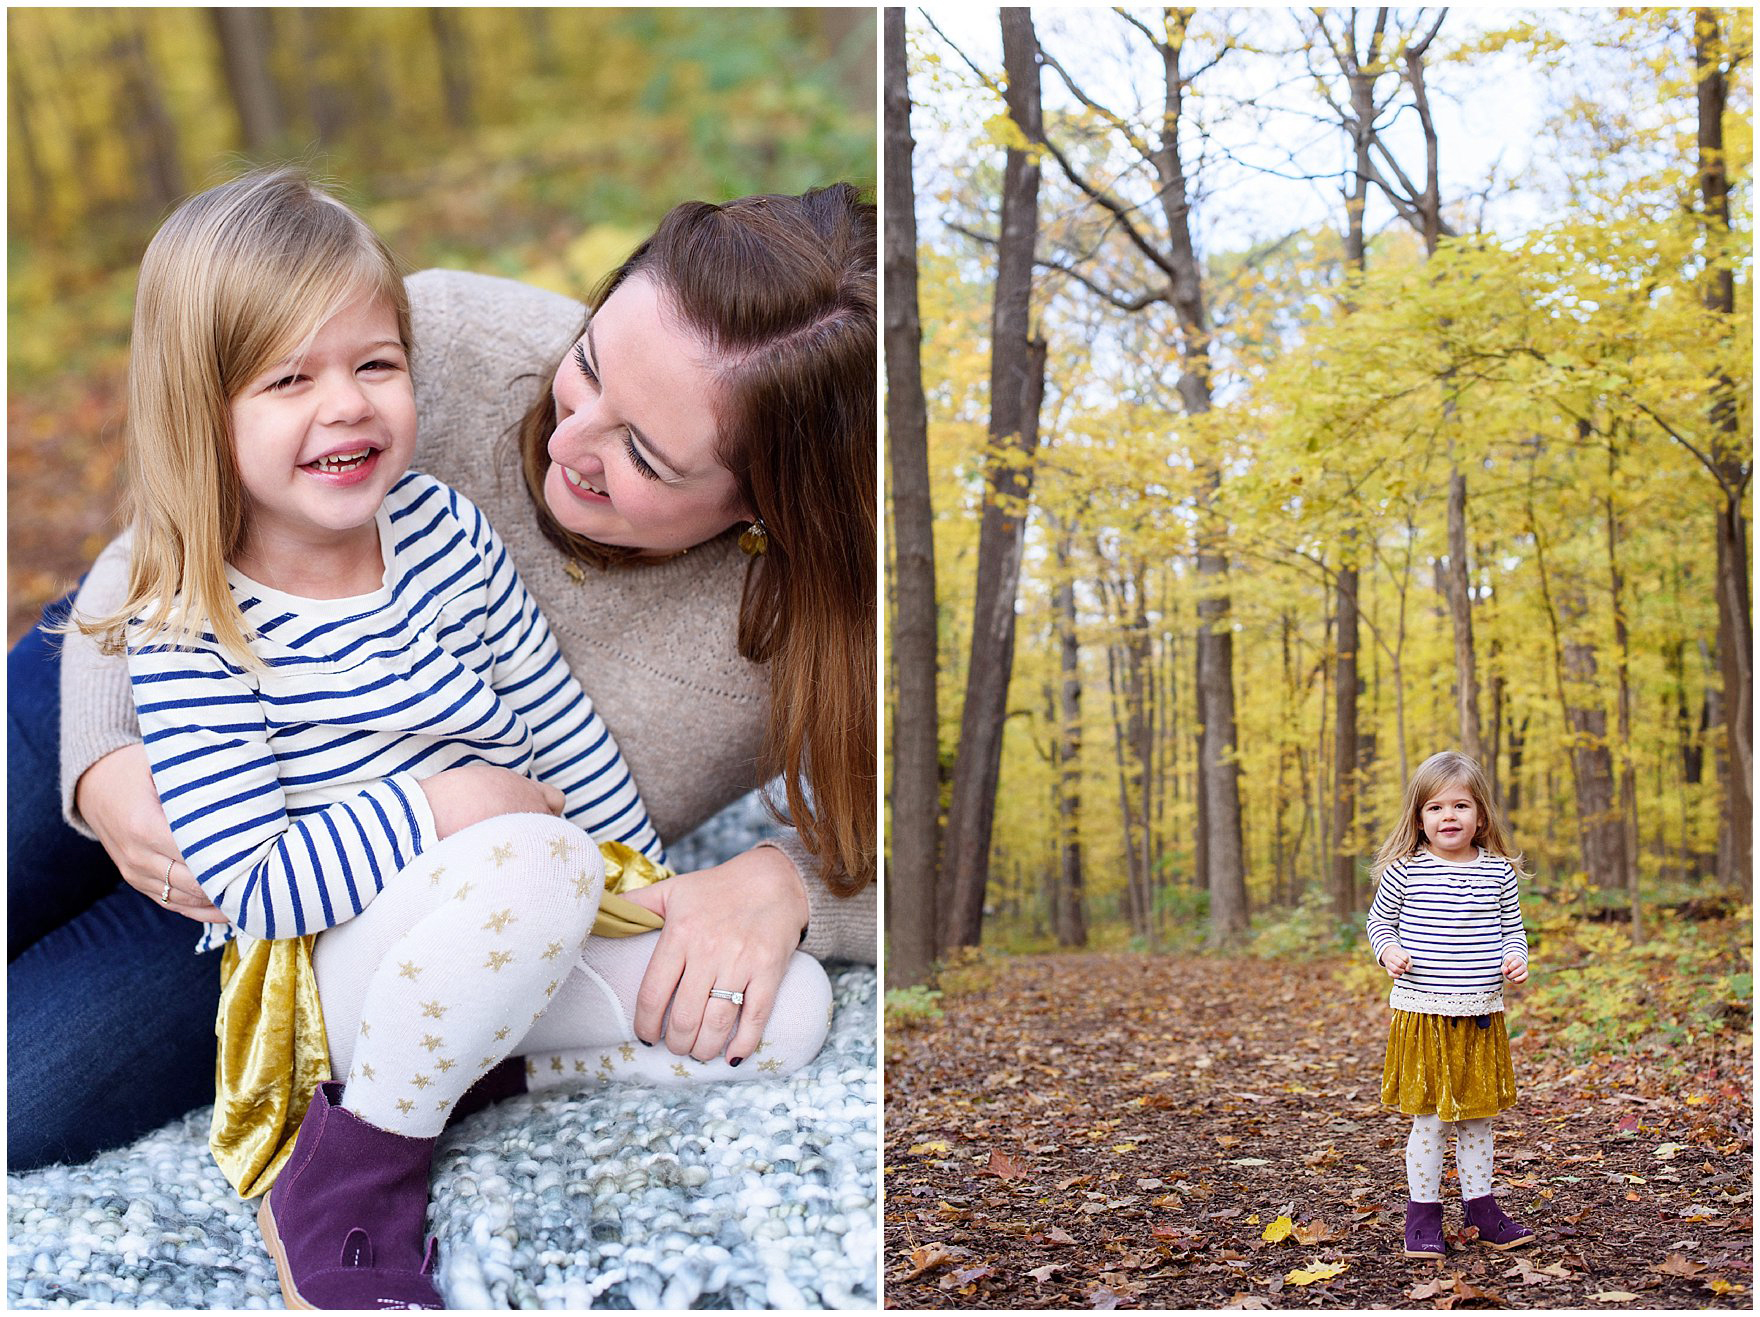 A young girl poses for photos against a backdrop of golden leaves during a Morton Arboretum fall family session.